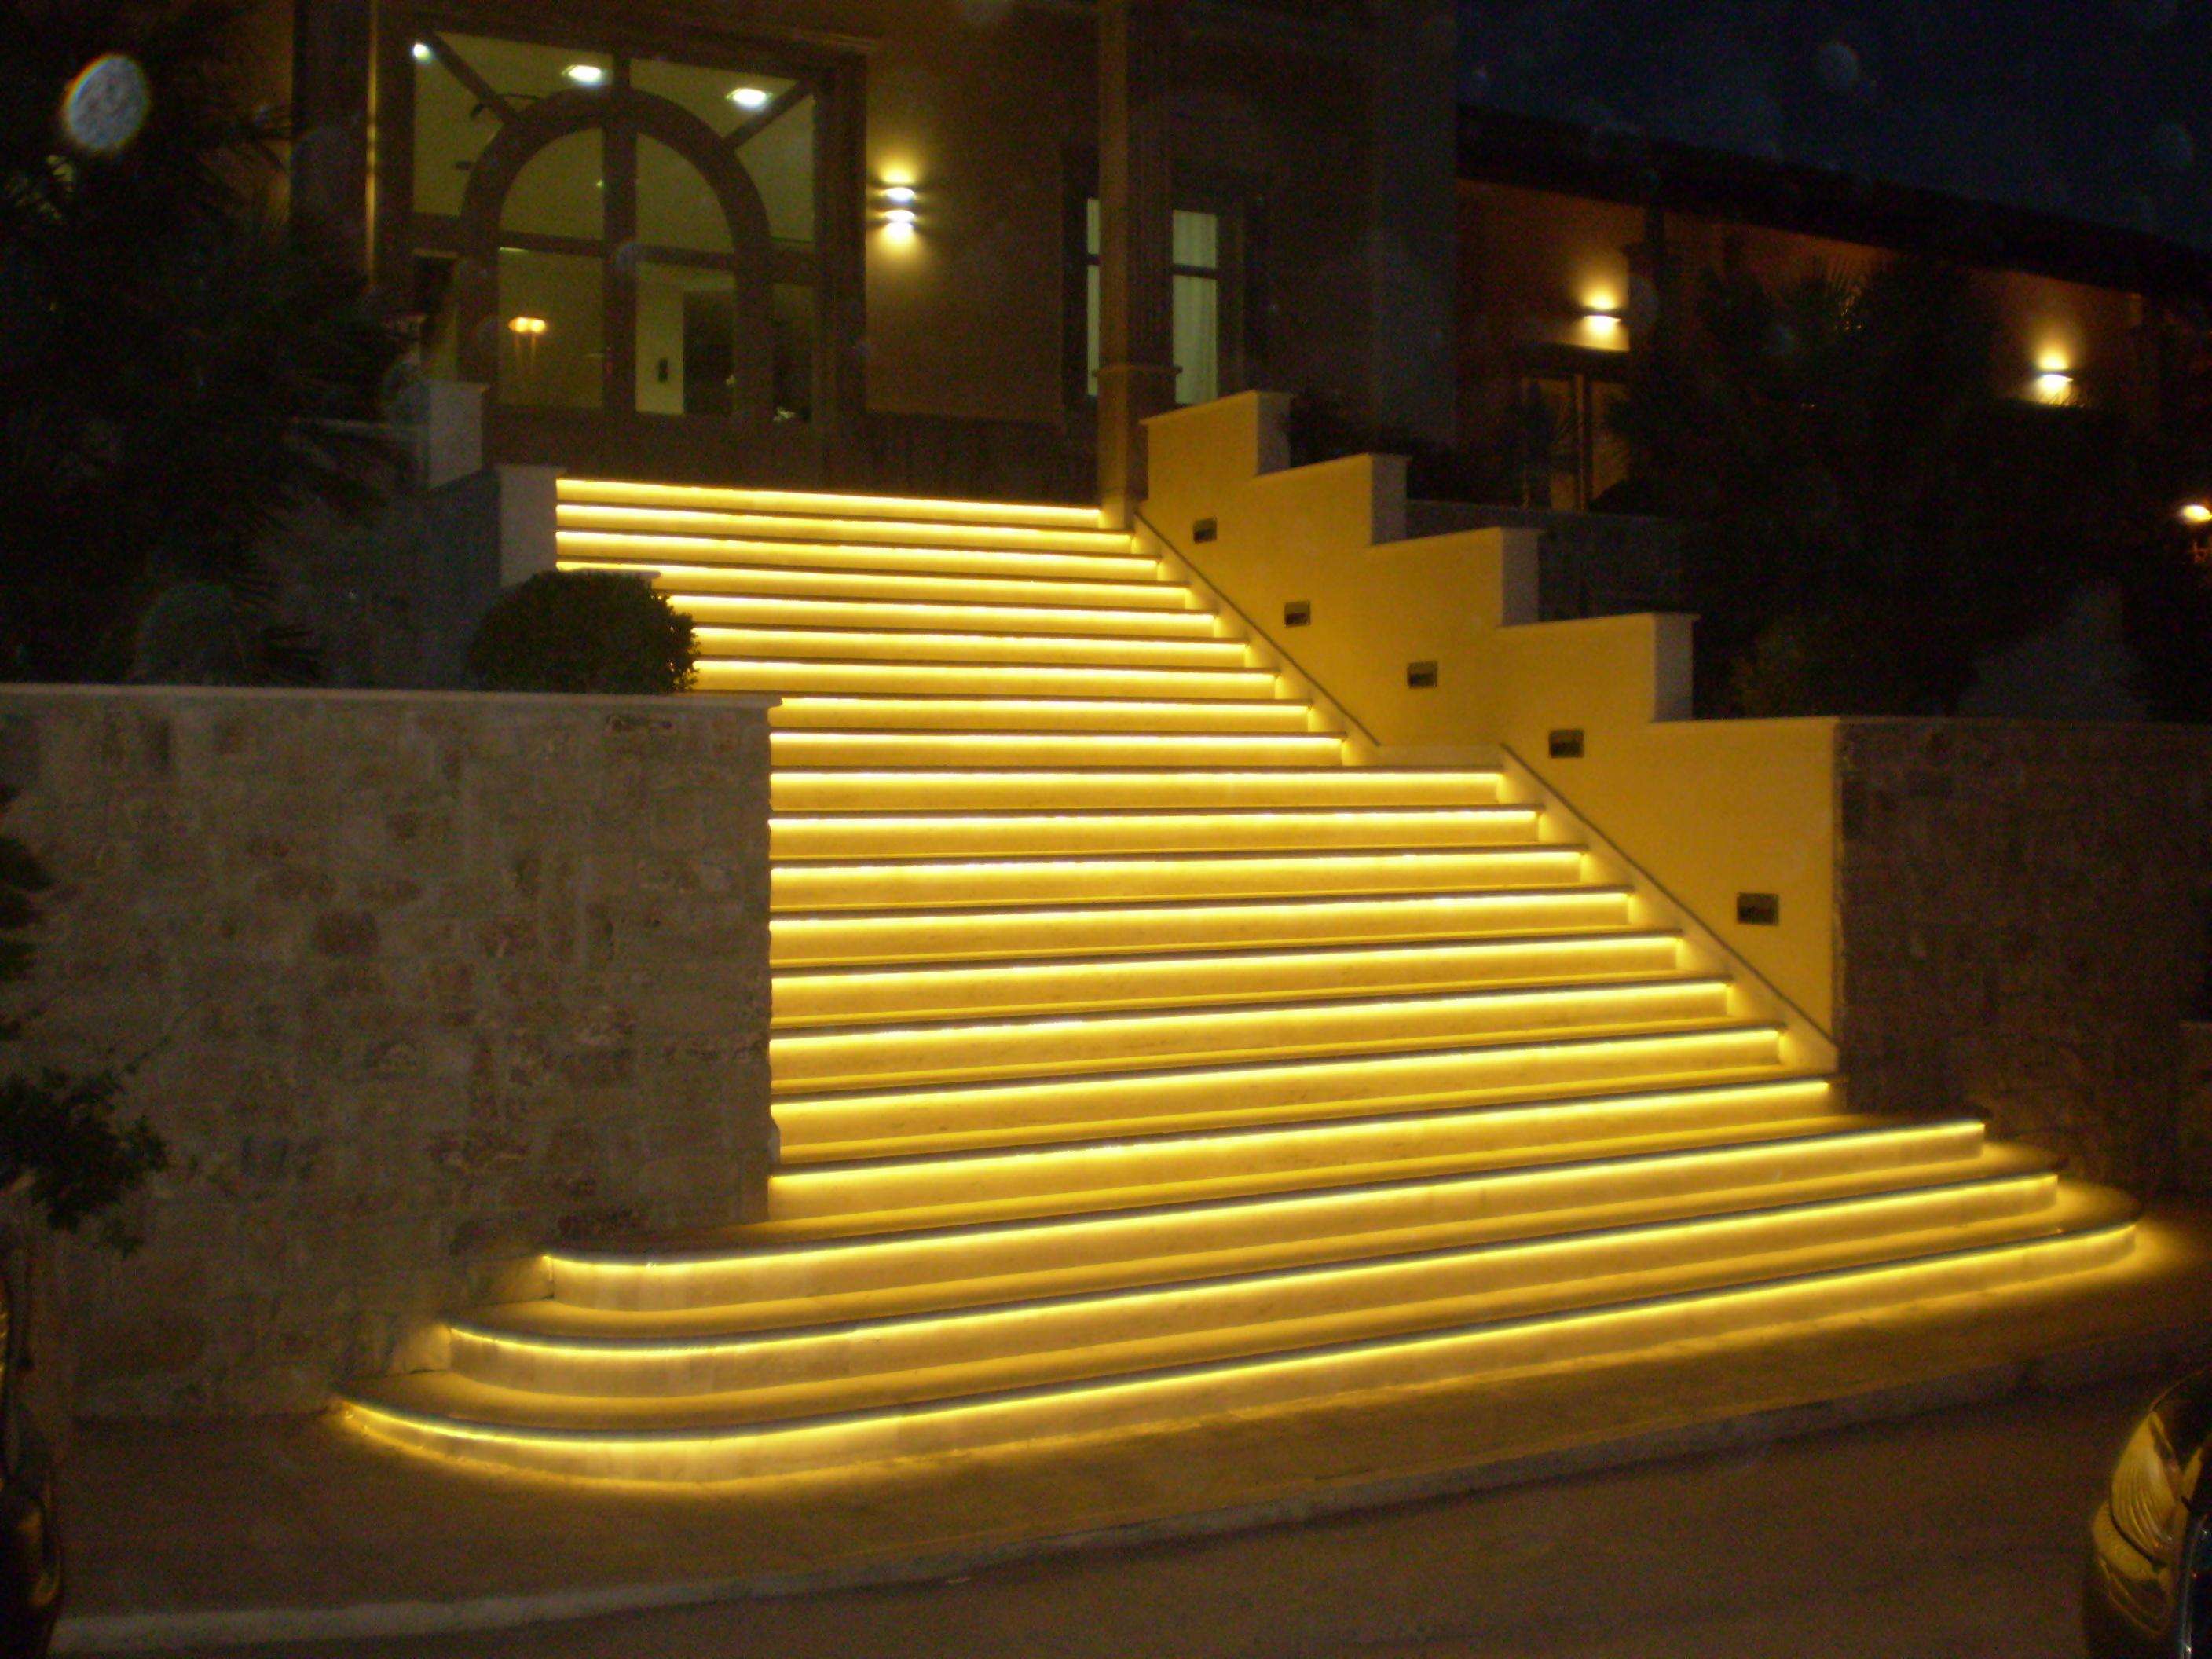 Rhea led linear - Escaleras con led ...